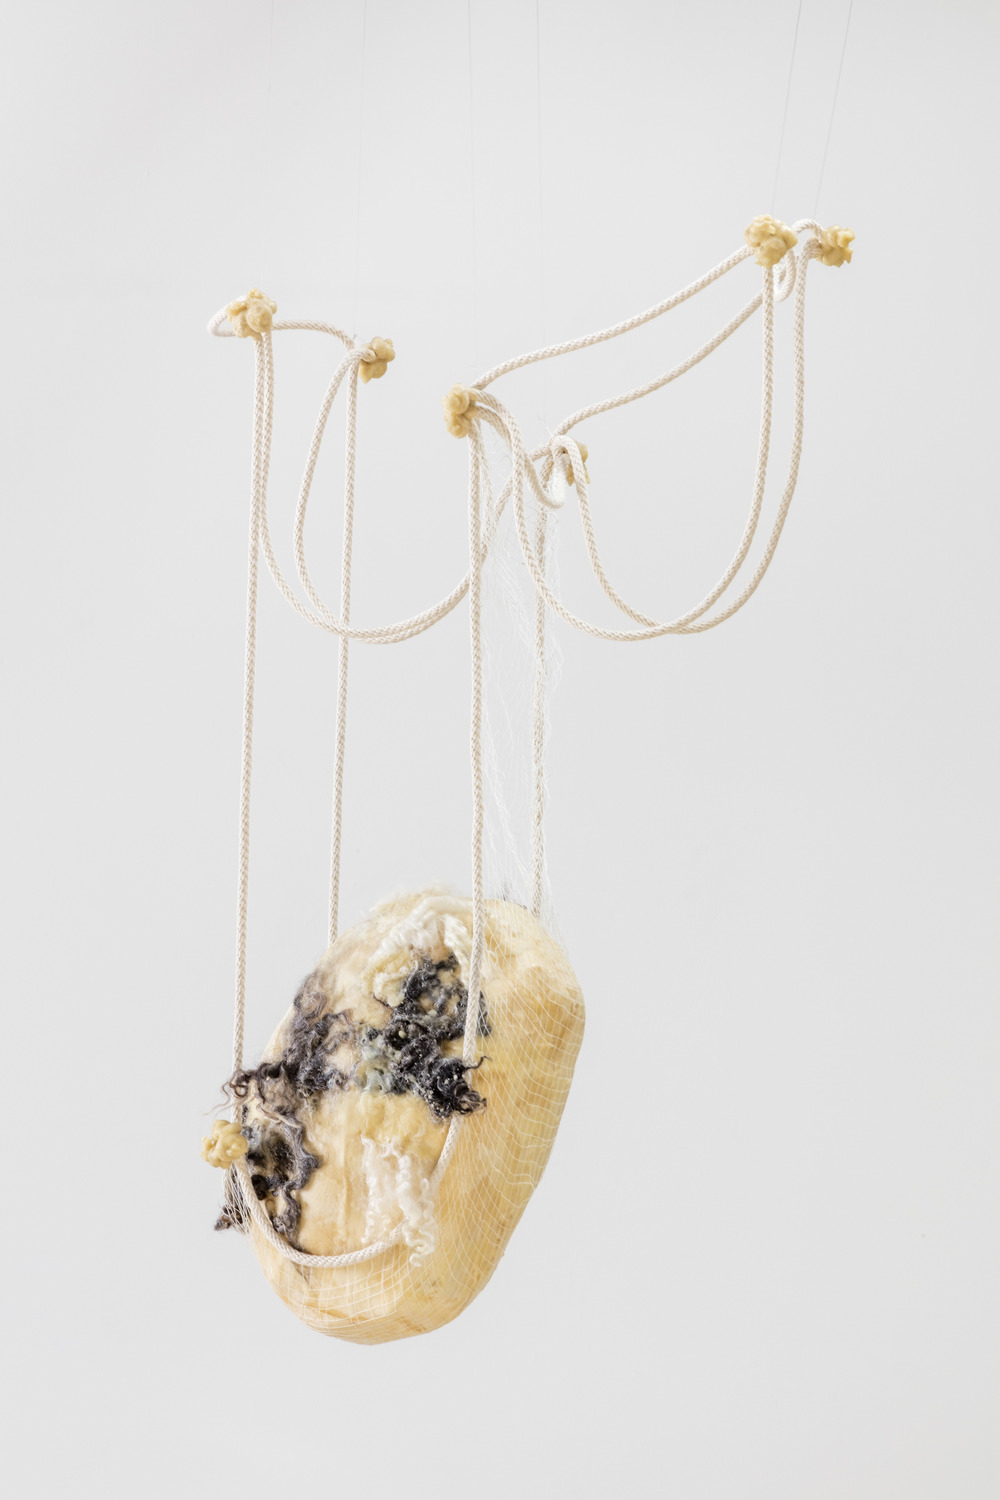 Tanya Aguiniga   Privilege , 2016  Cotton rope, cotton thread, foam, gauze, alpaca, wool and beeswax  33 x 18 x 9.5 inches